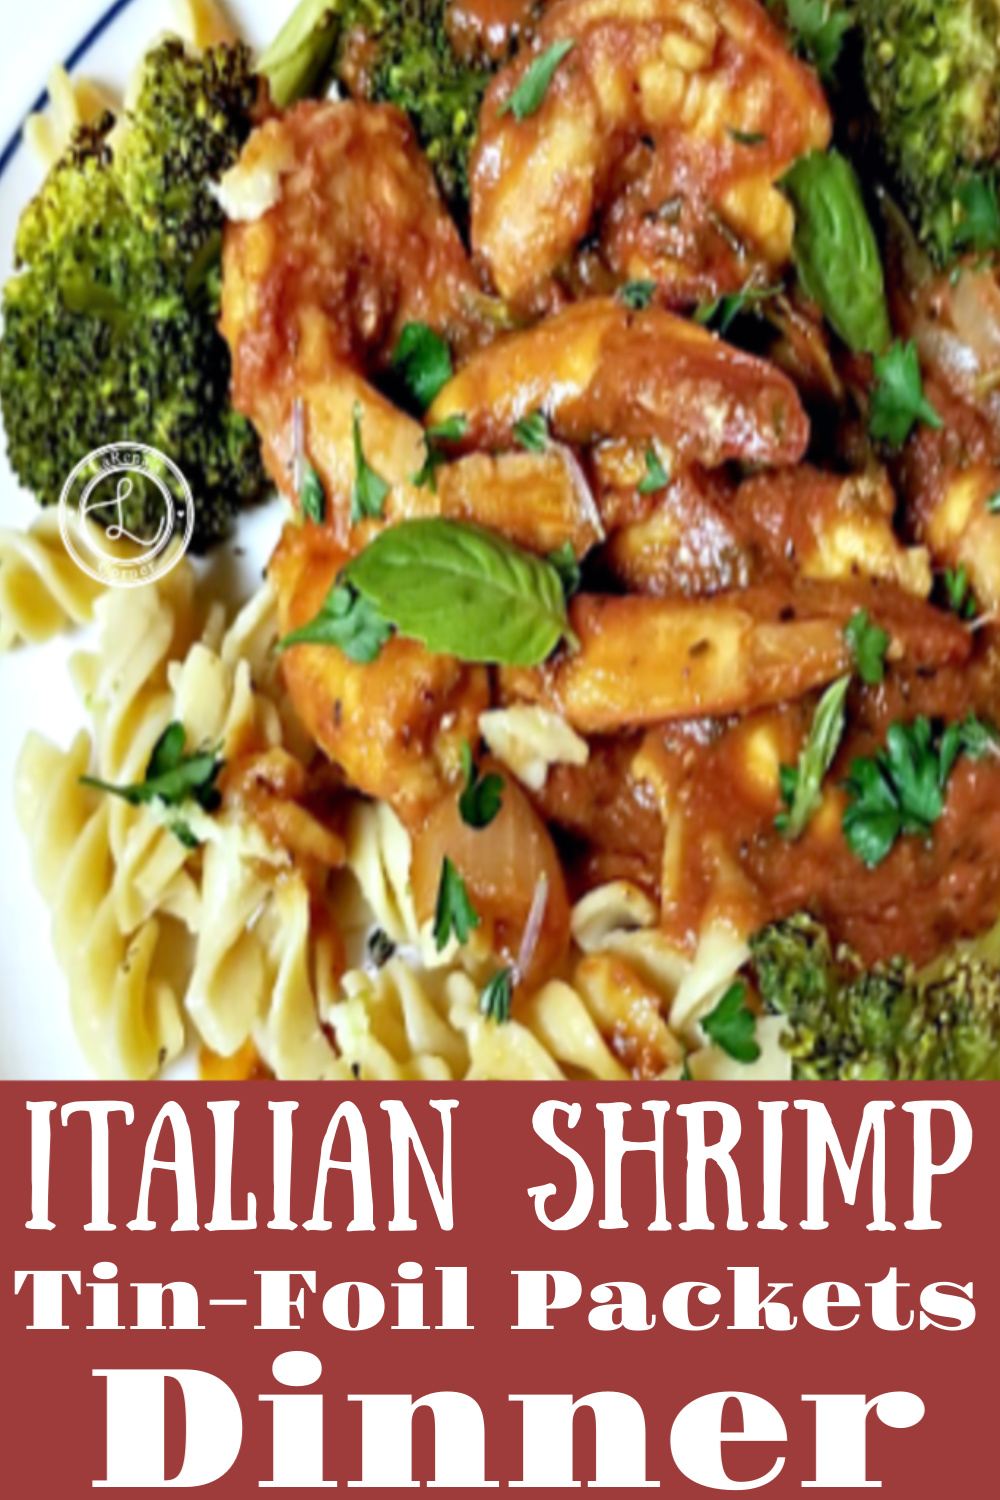 A plate of Italian Shrimp on top of pasta and broccoli